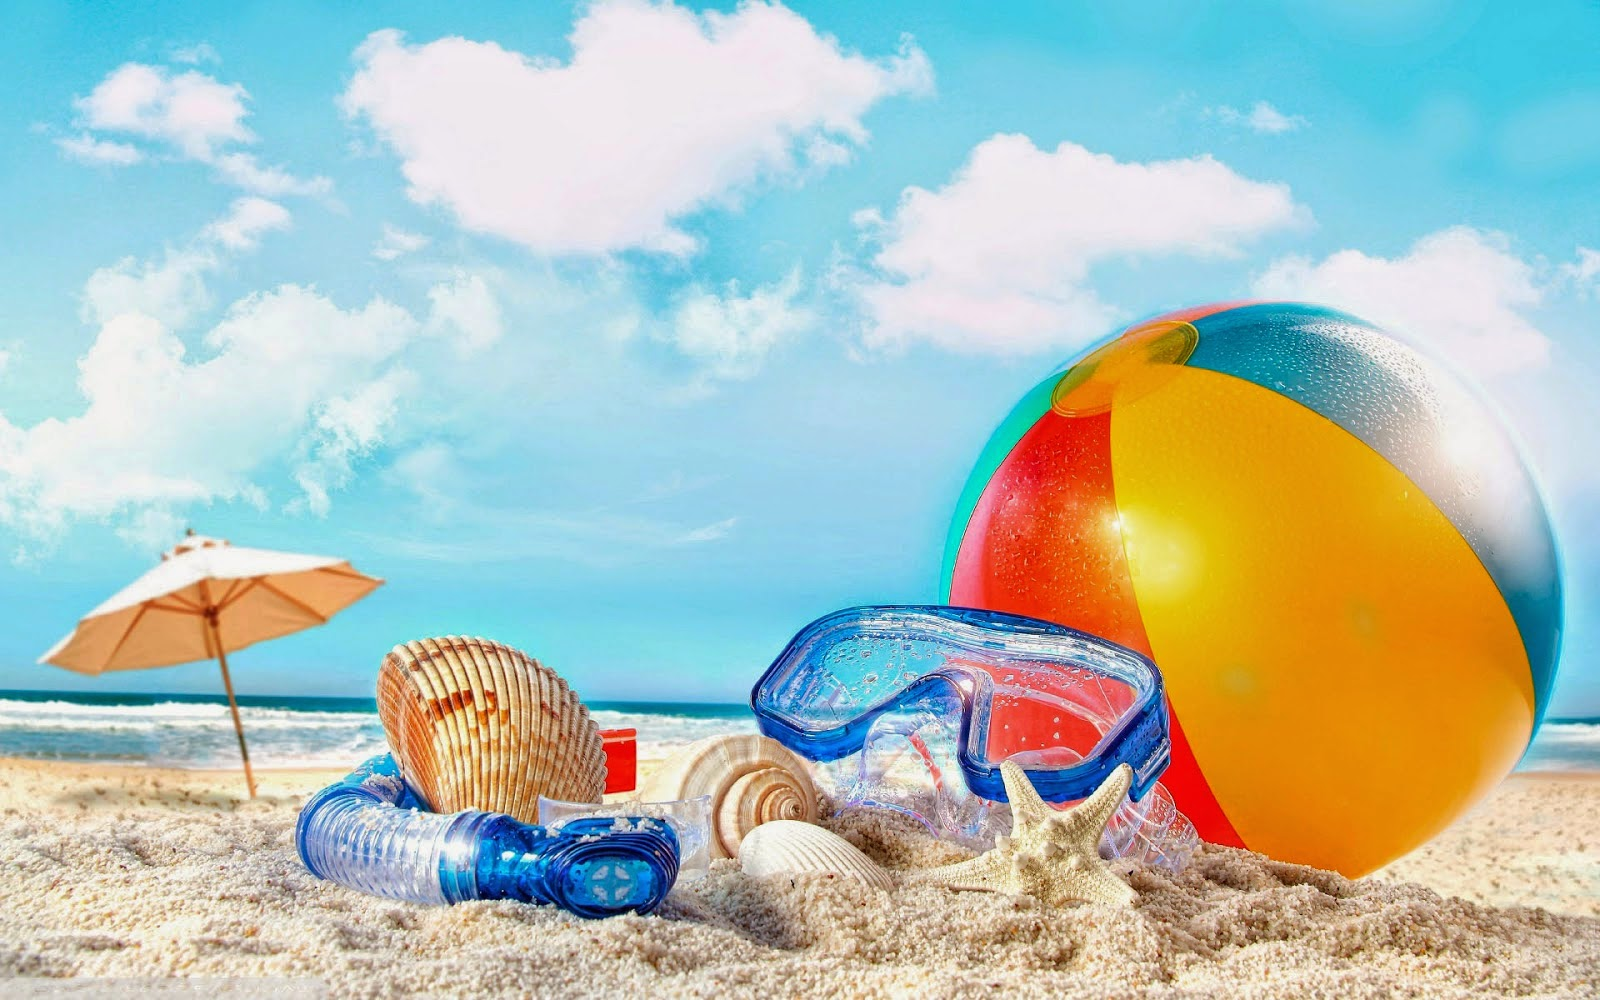 Sommer wallpapers sommer bilder hd hintergrundbilder for Ete wallpaper